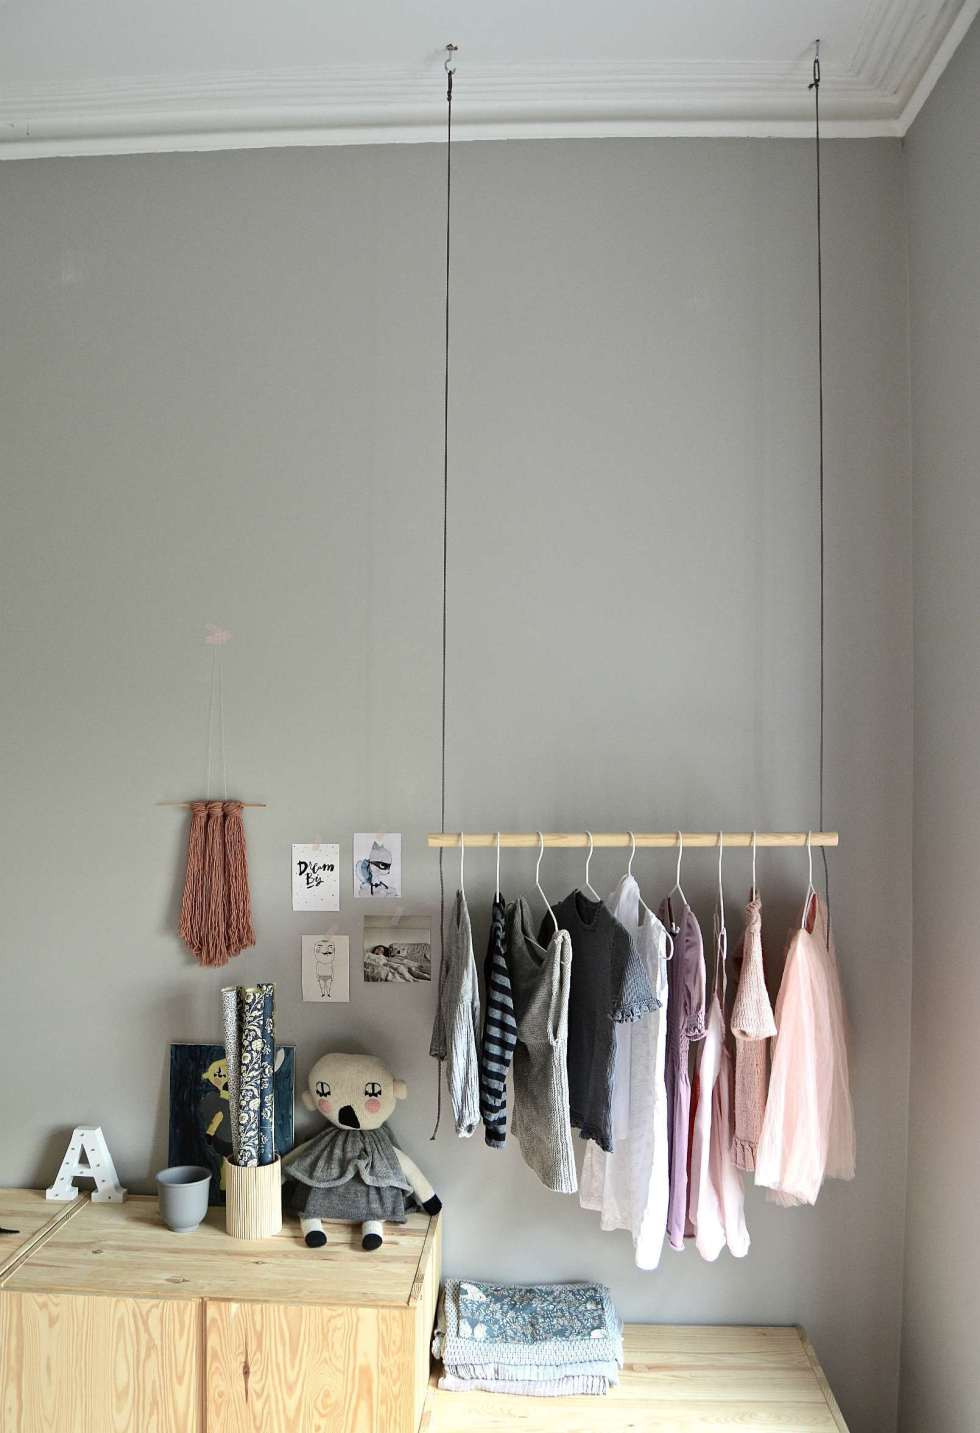 Best ideas about DIY Hanging Clothing Rack . Save or Pin Hang on With this DIY hanging clothes rack DIY home Now.